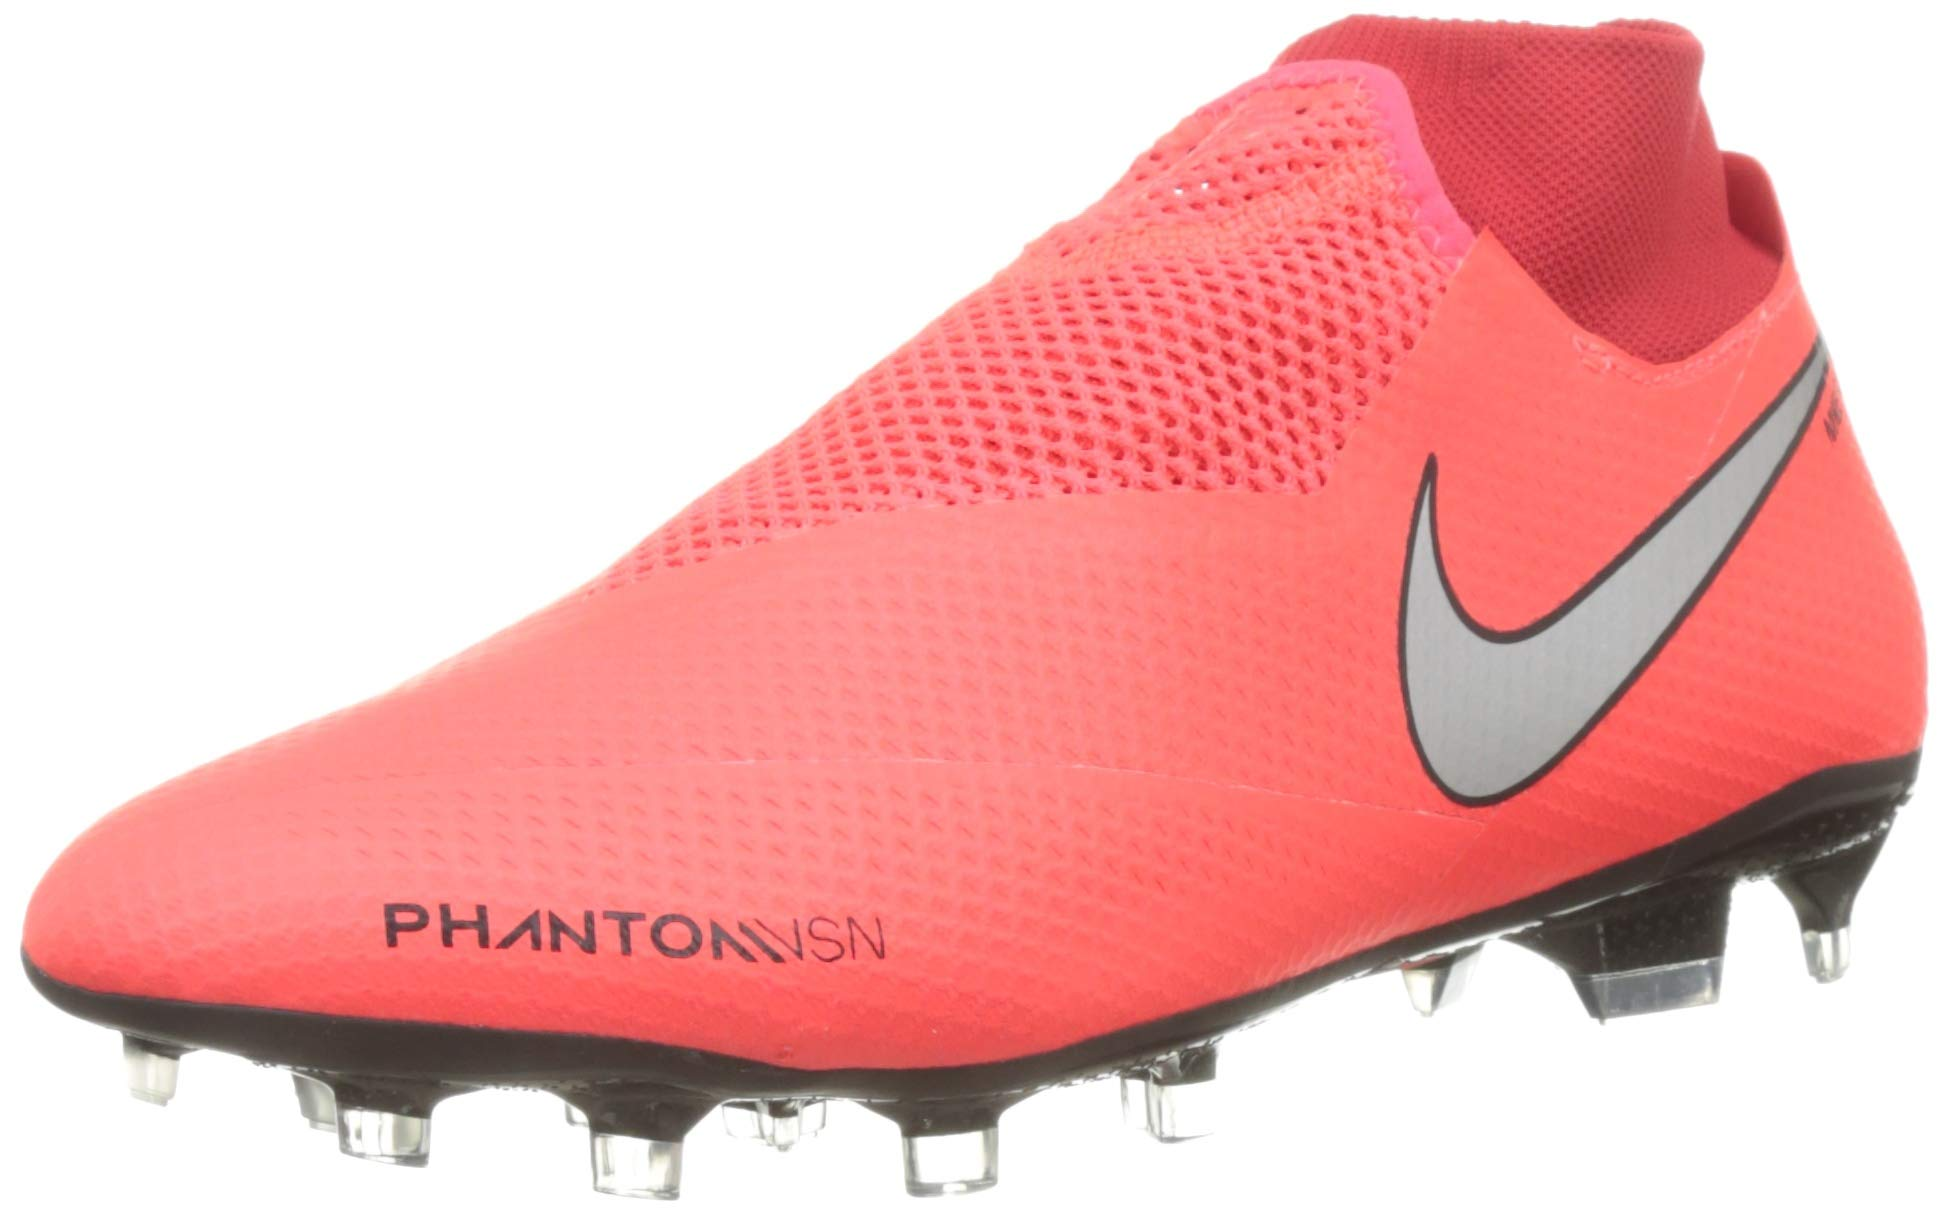 metallic Silver NikePhantom Vsn Pro Chaussures Crimson Df 60042 Fg De Football 600 Eu Rougebright fY6g7vby